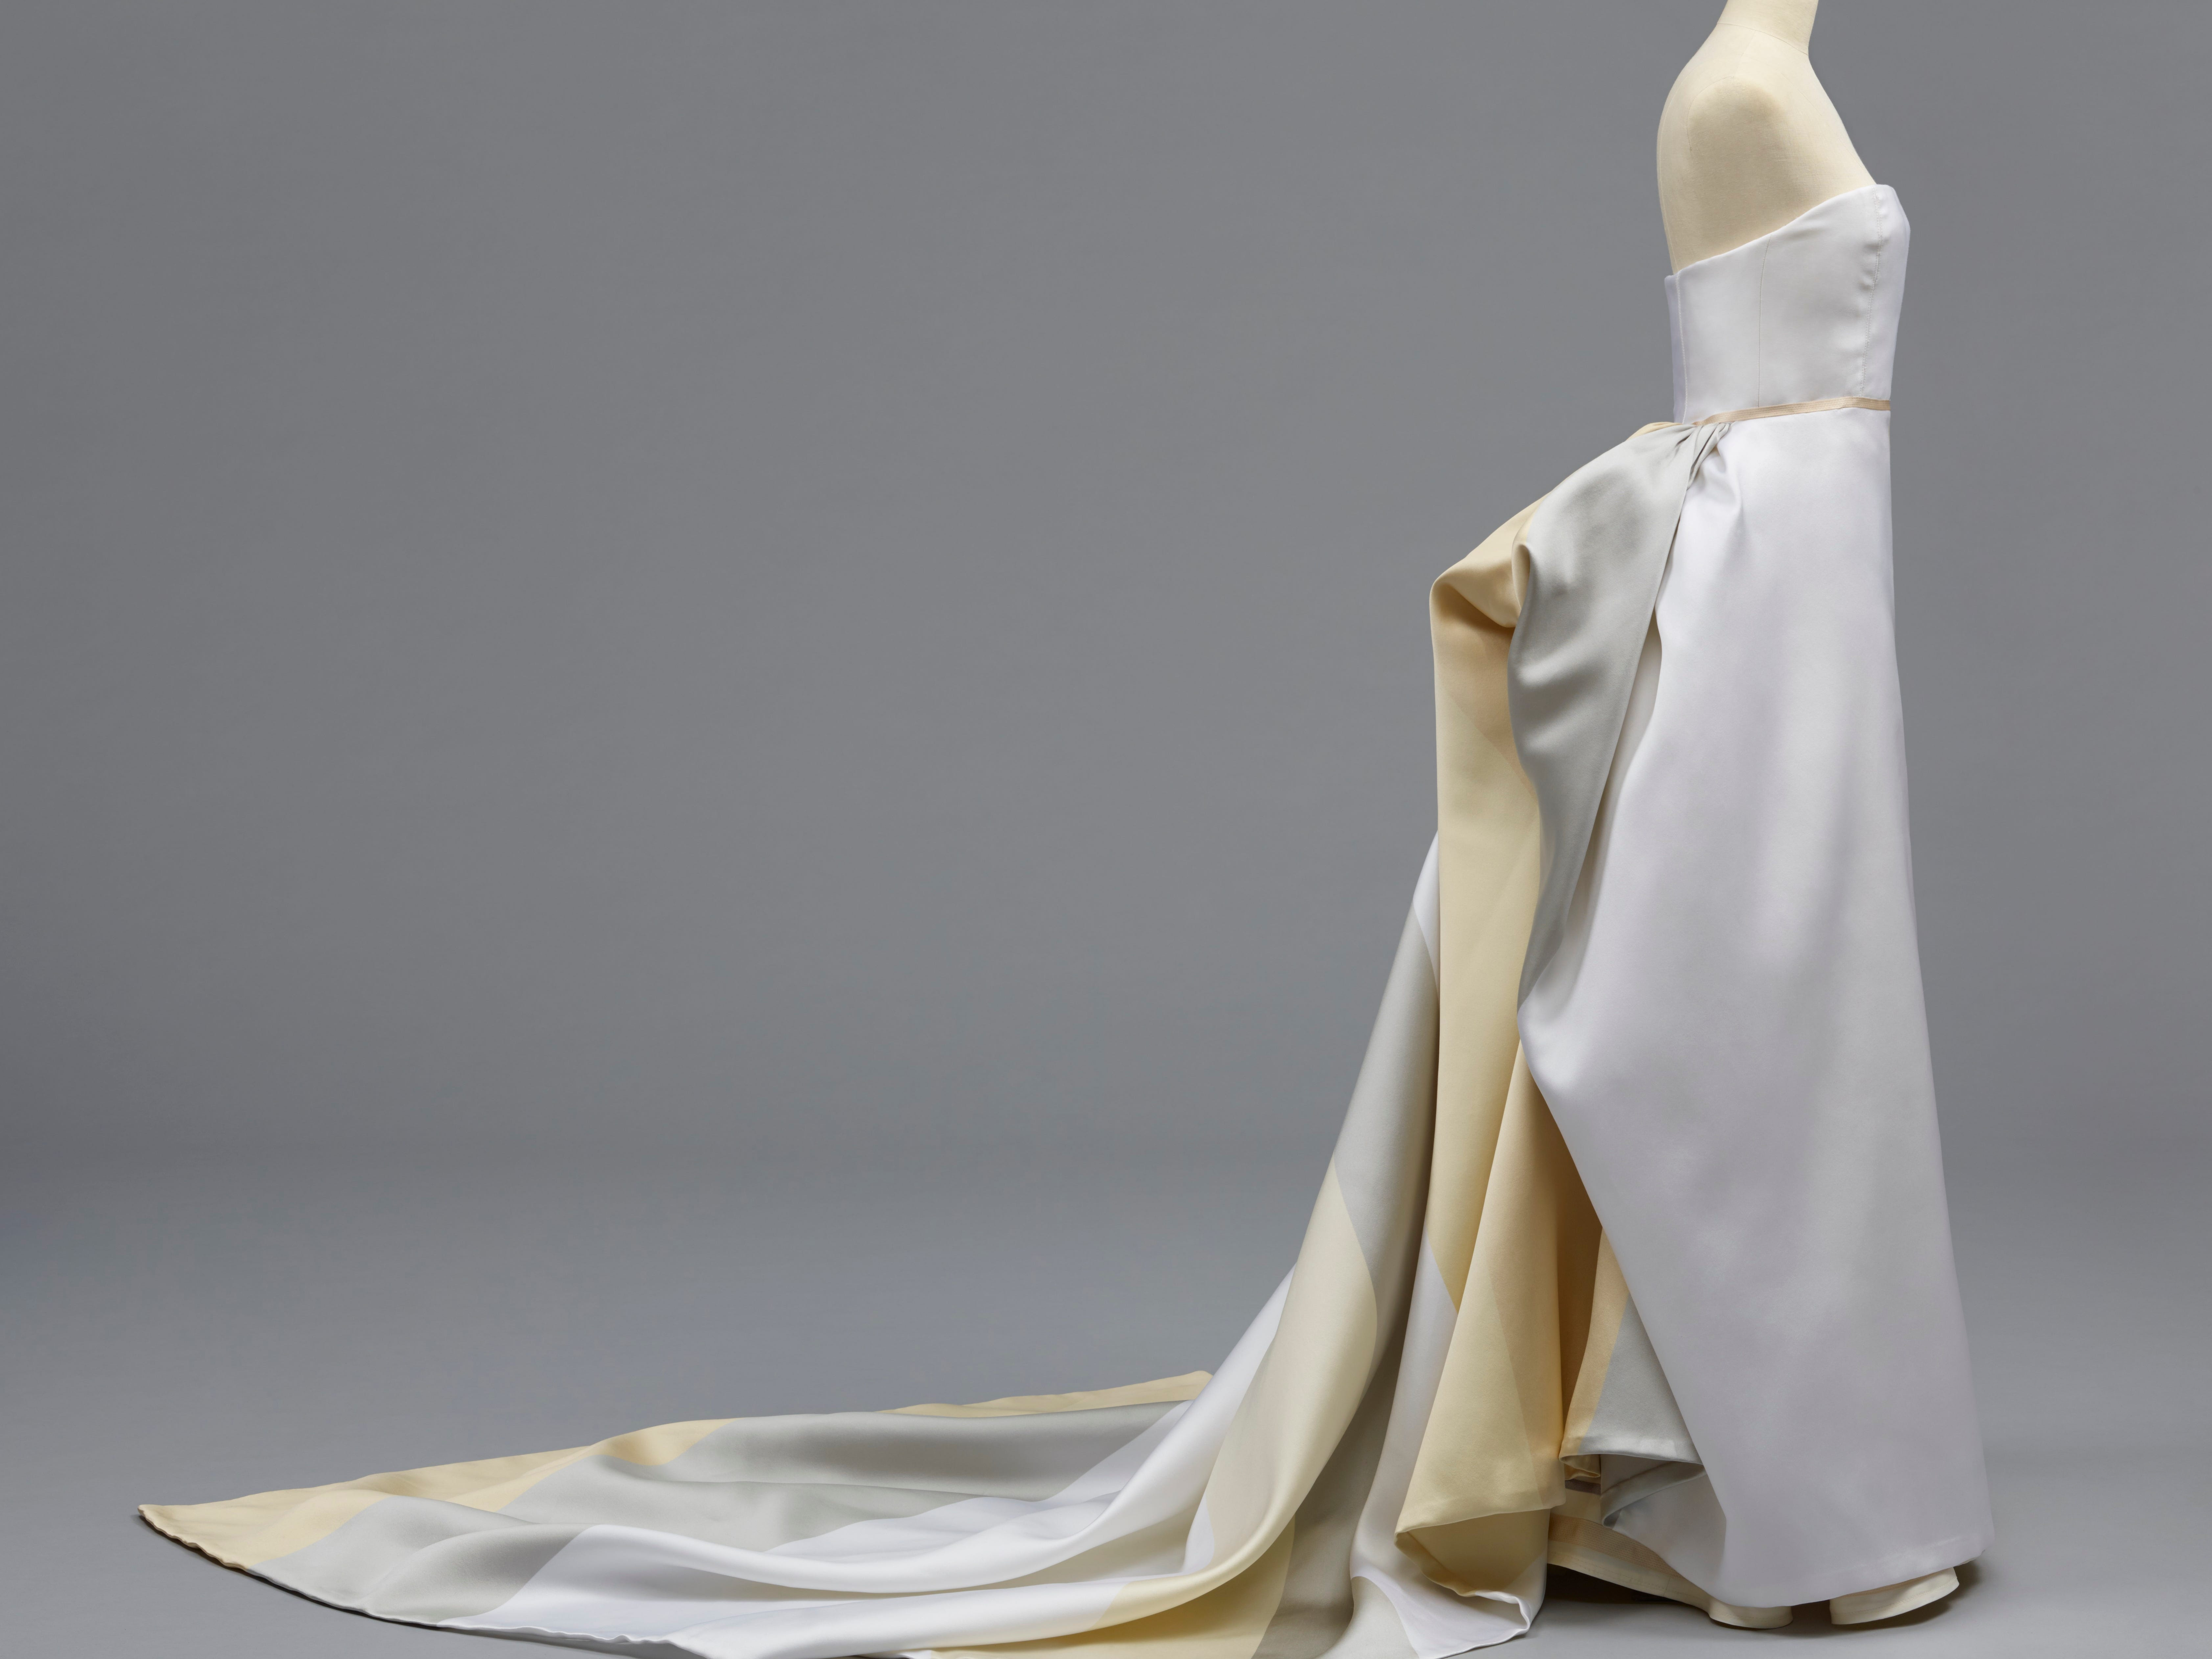 Designed by Carolina Herrera, this  'Woman's Wedding Dress' is from   Spring 2012. It is a   striped silk satin piece.